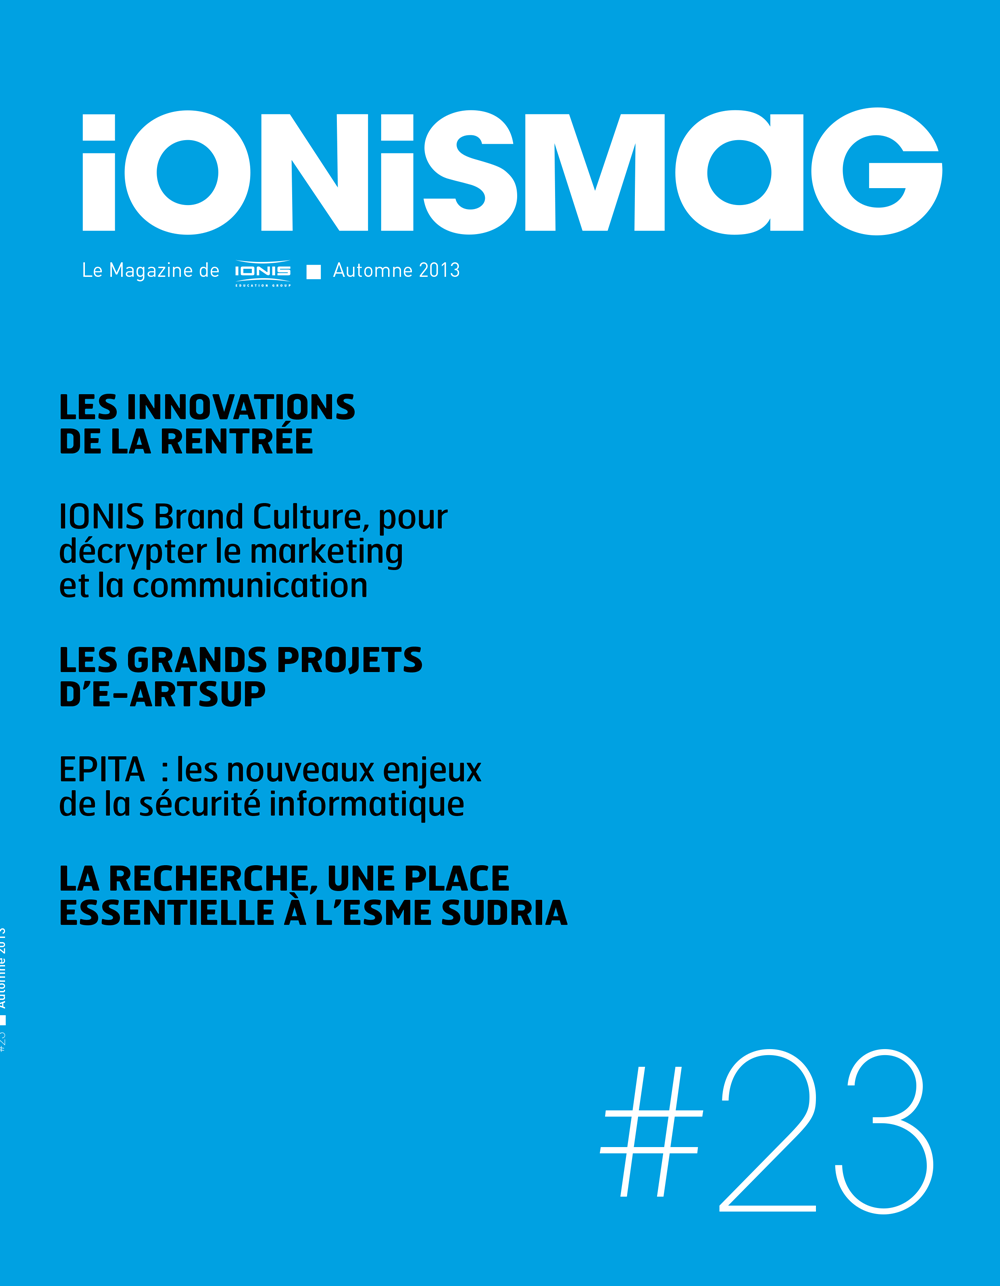 IONIS MAG 23